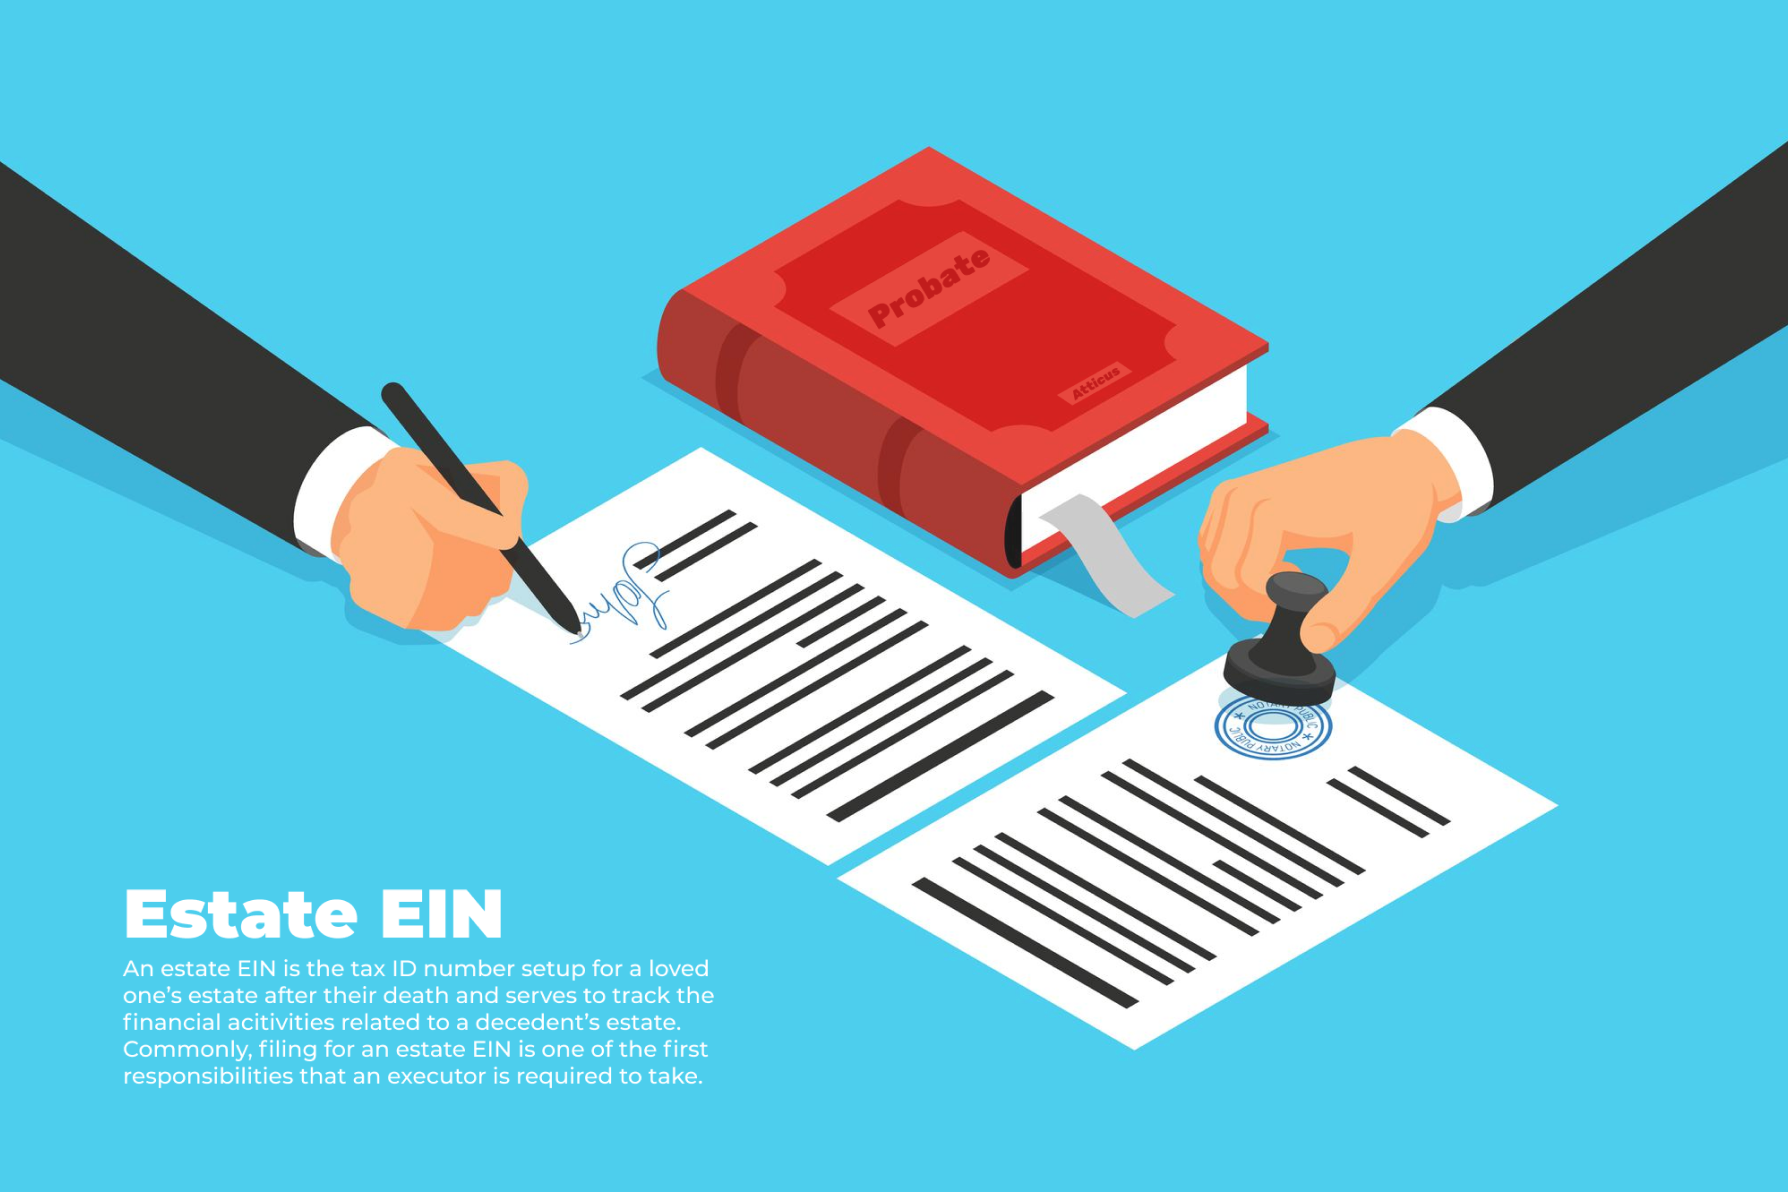 Illustration of two hands signing Atticus estate EIN application